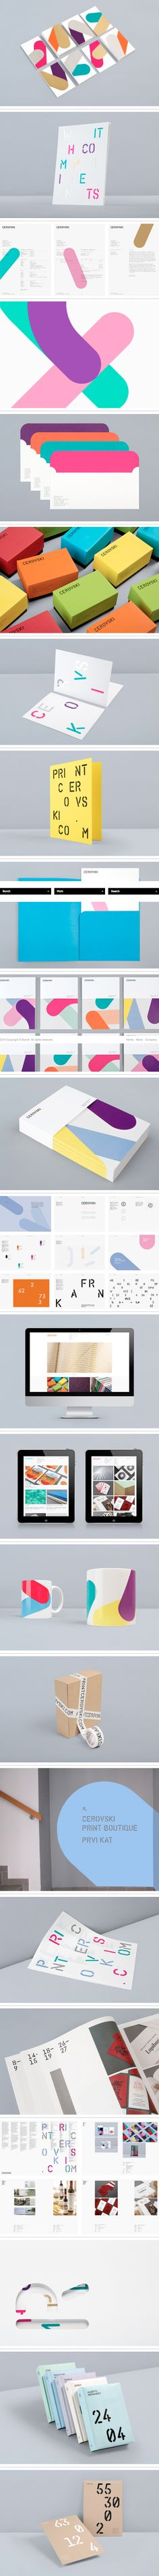 Cerovski, a young Croatian print production studio | Design by BUNCH